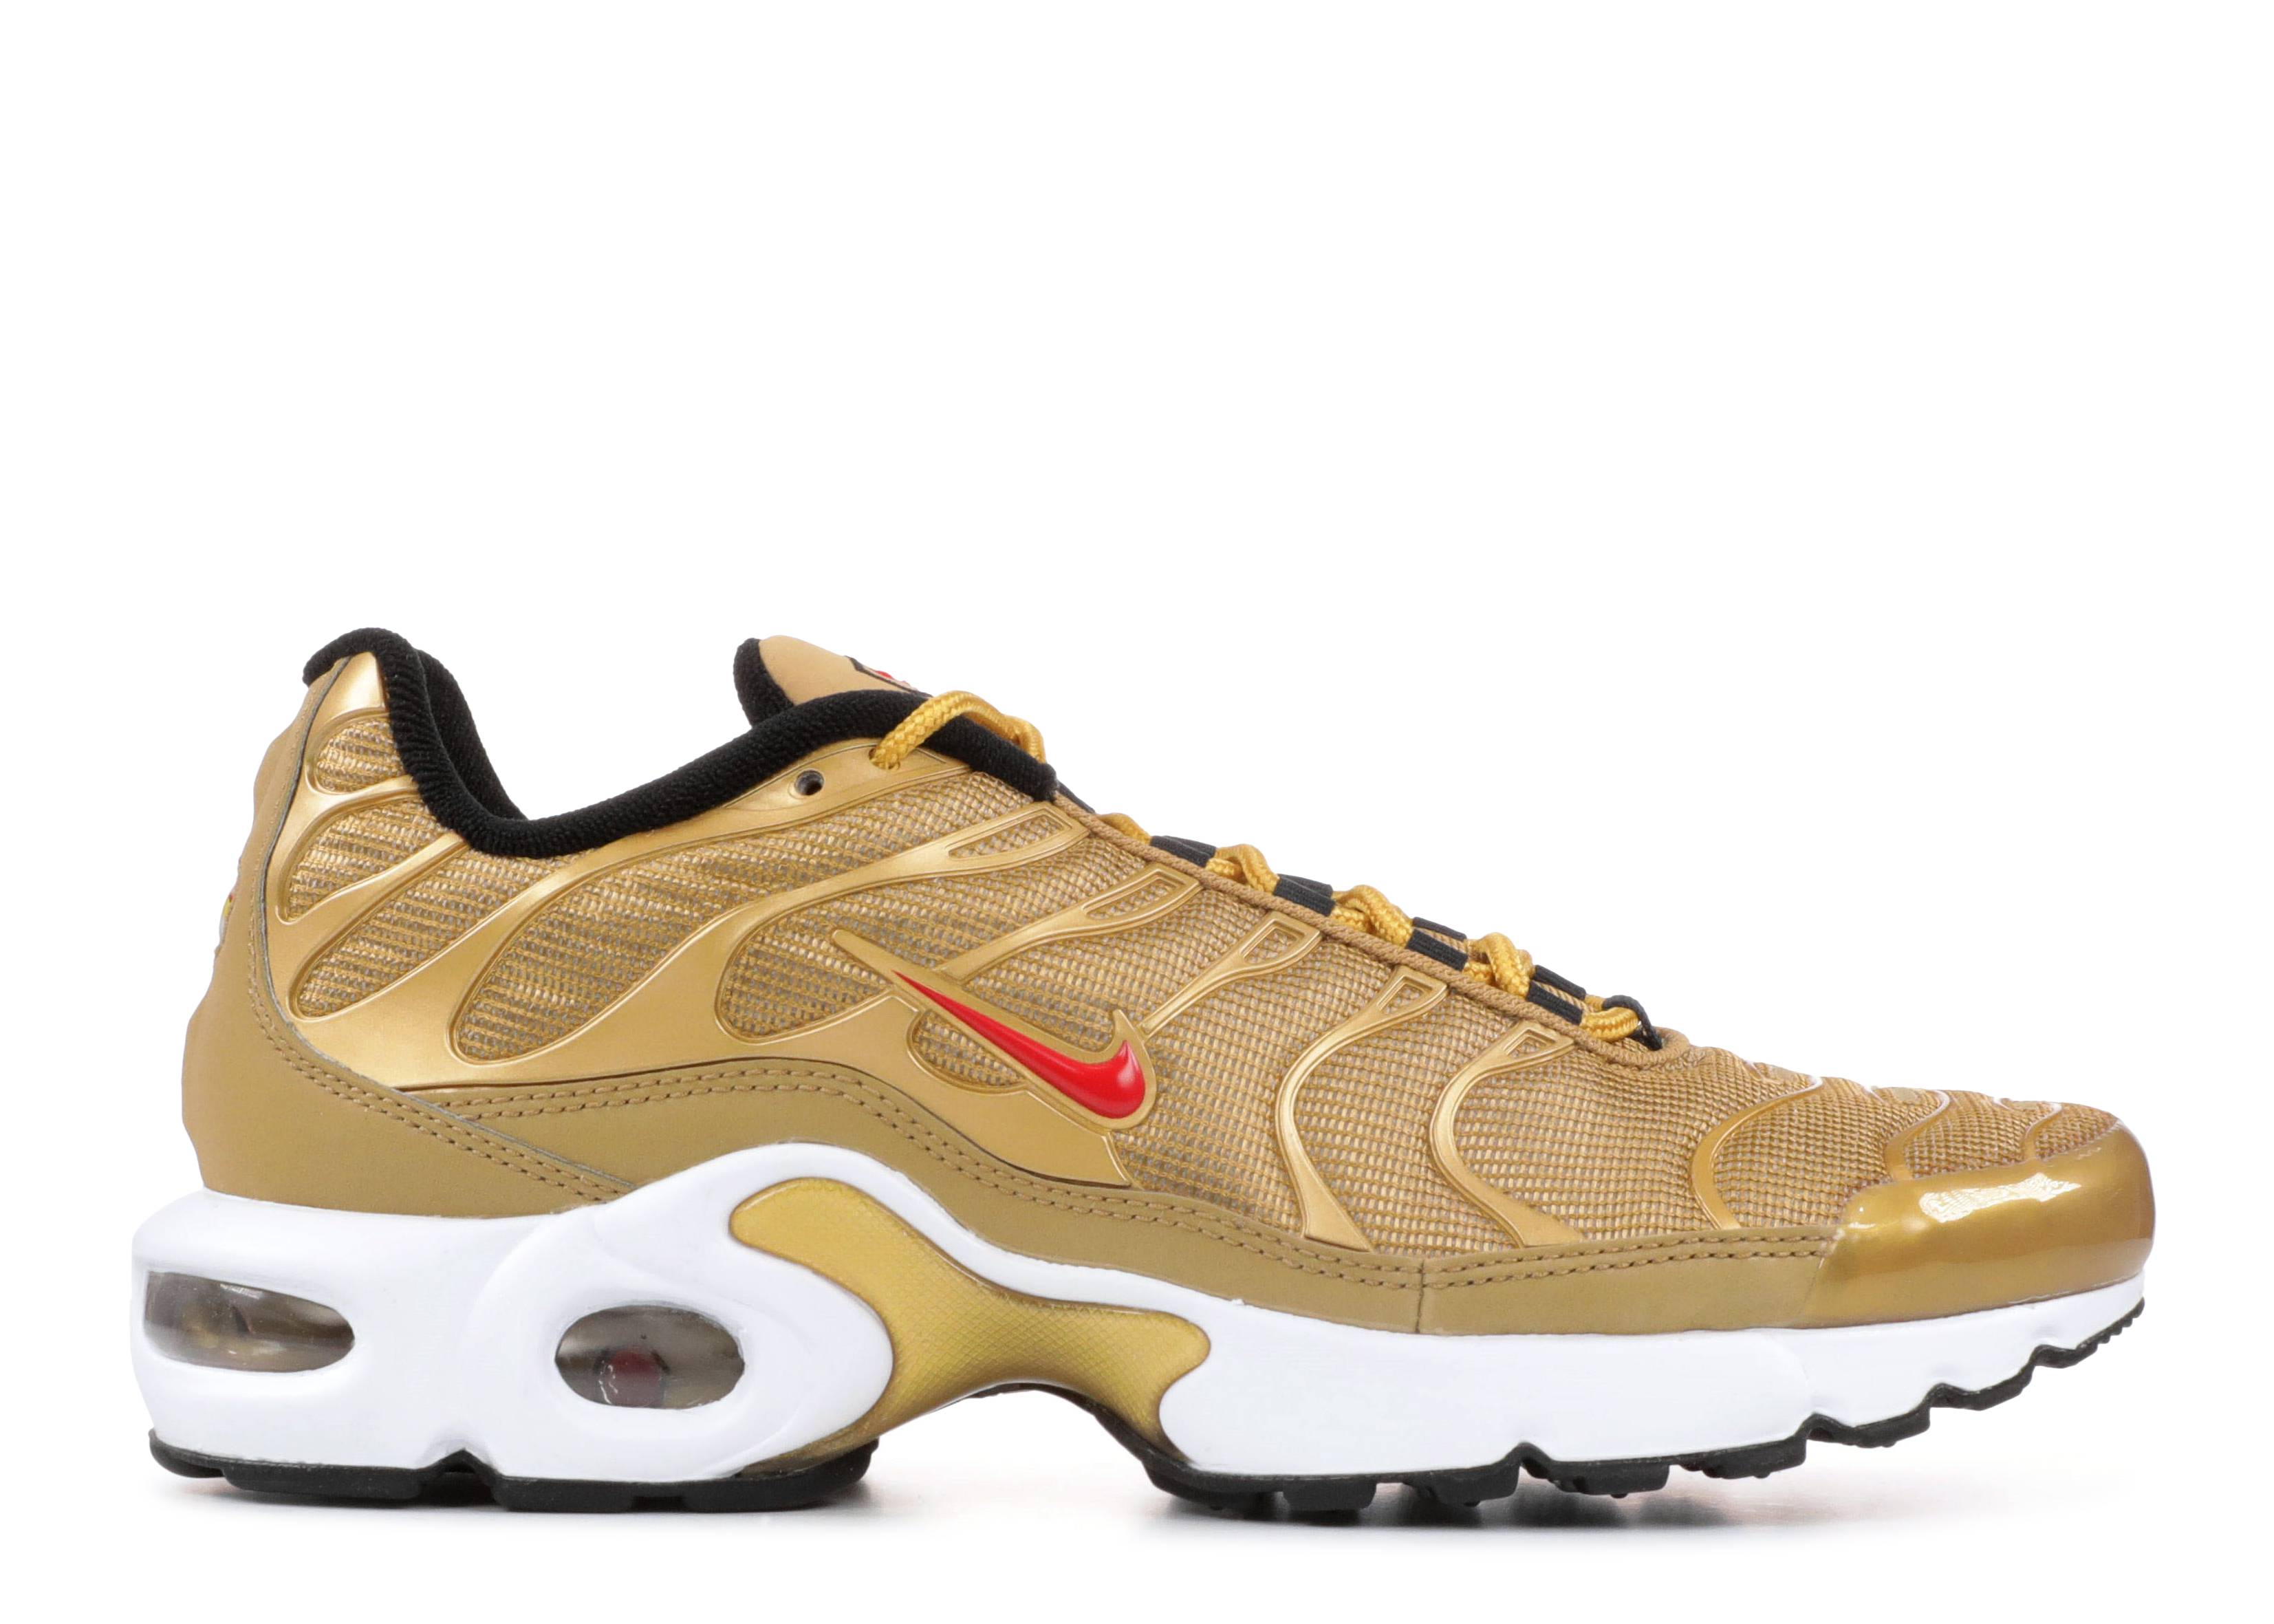 d4293cfb8c6 Air Max Plus TN SE BG - Nike - ar0259 700 - metallic gold university ...